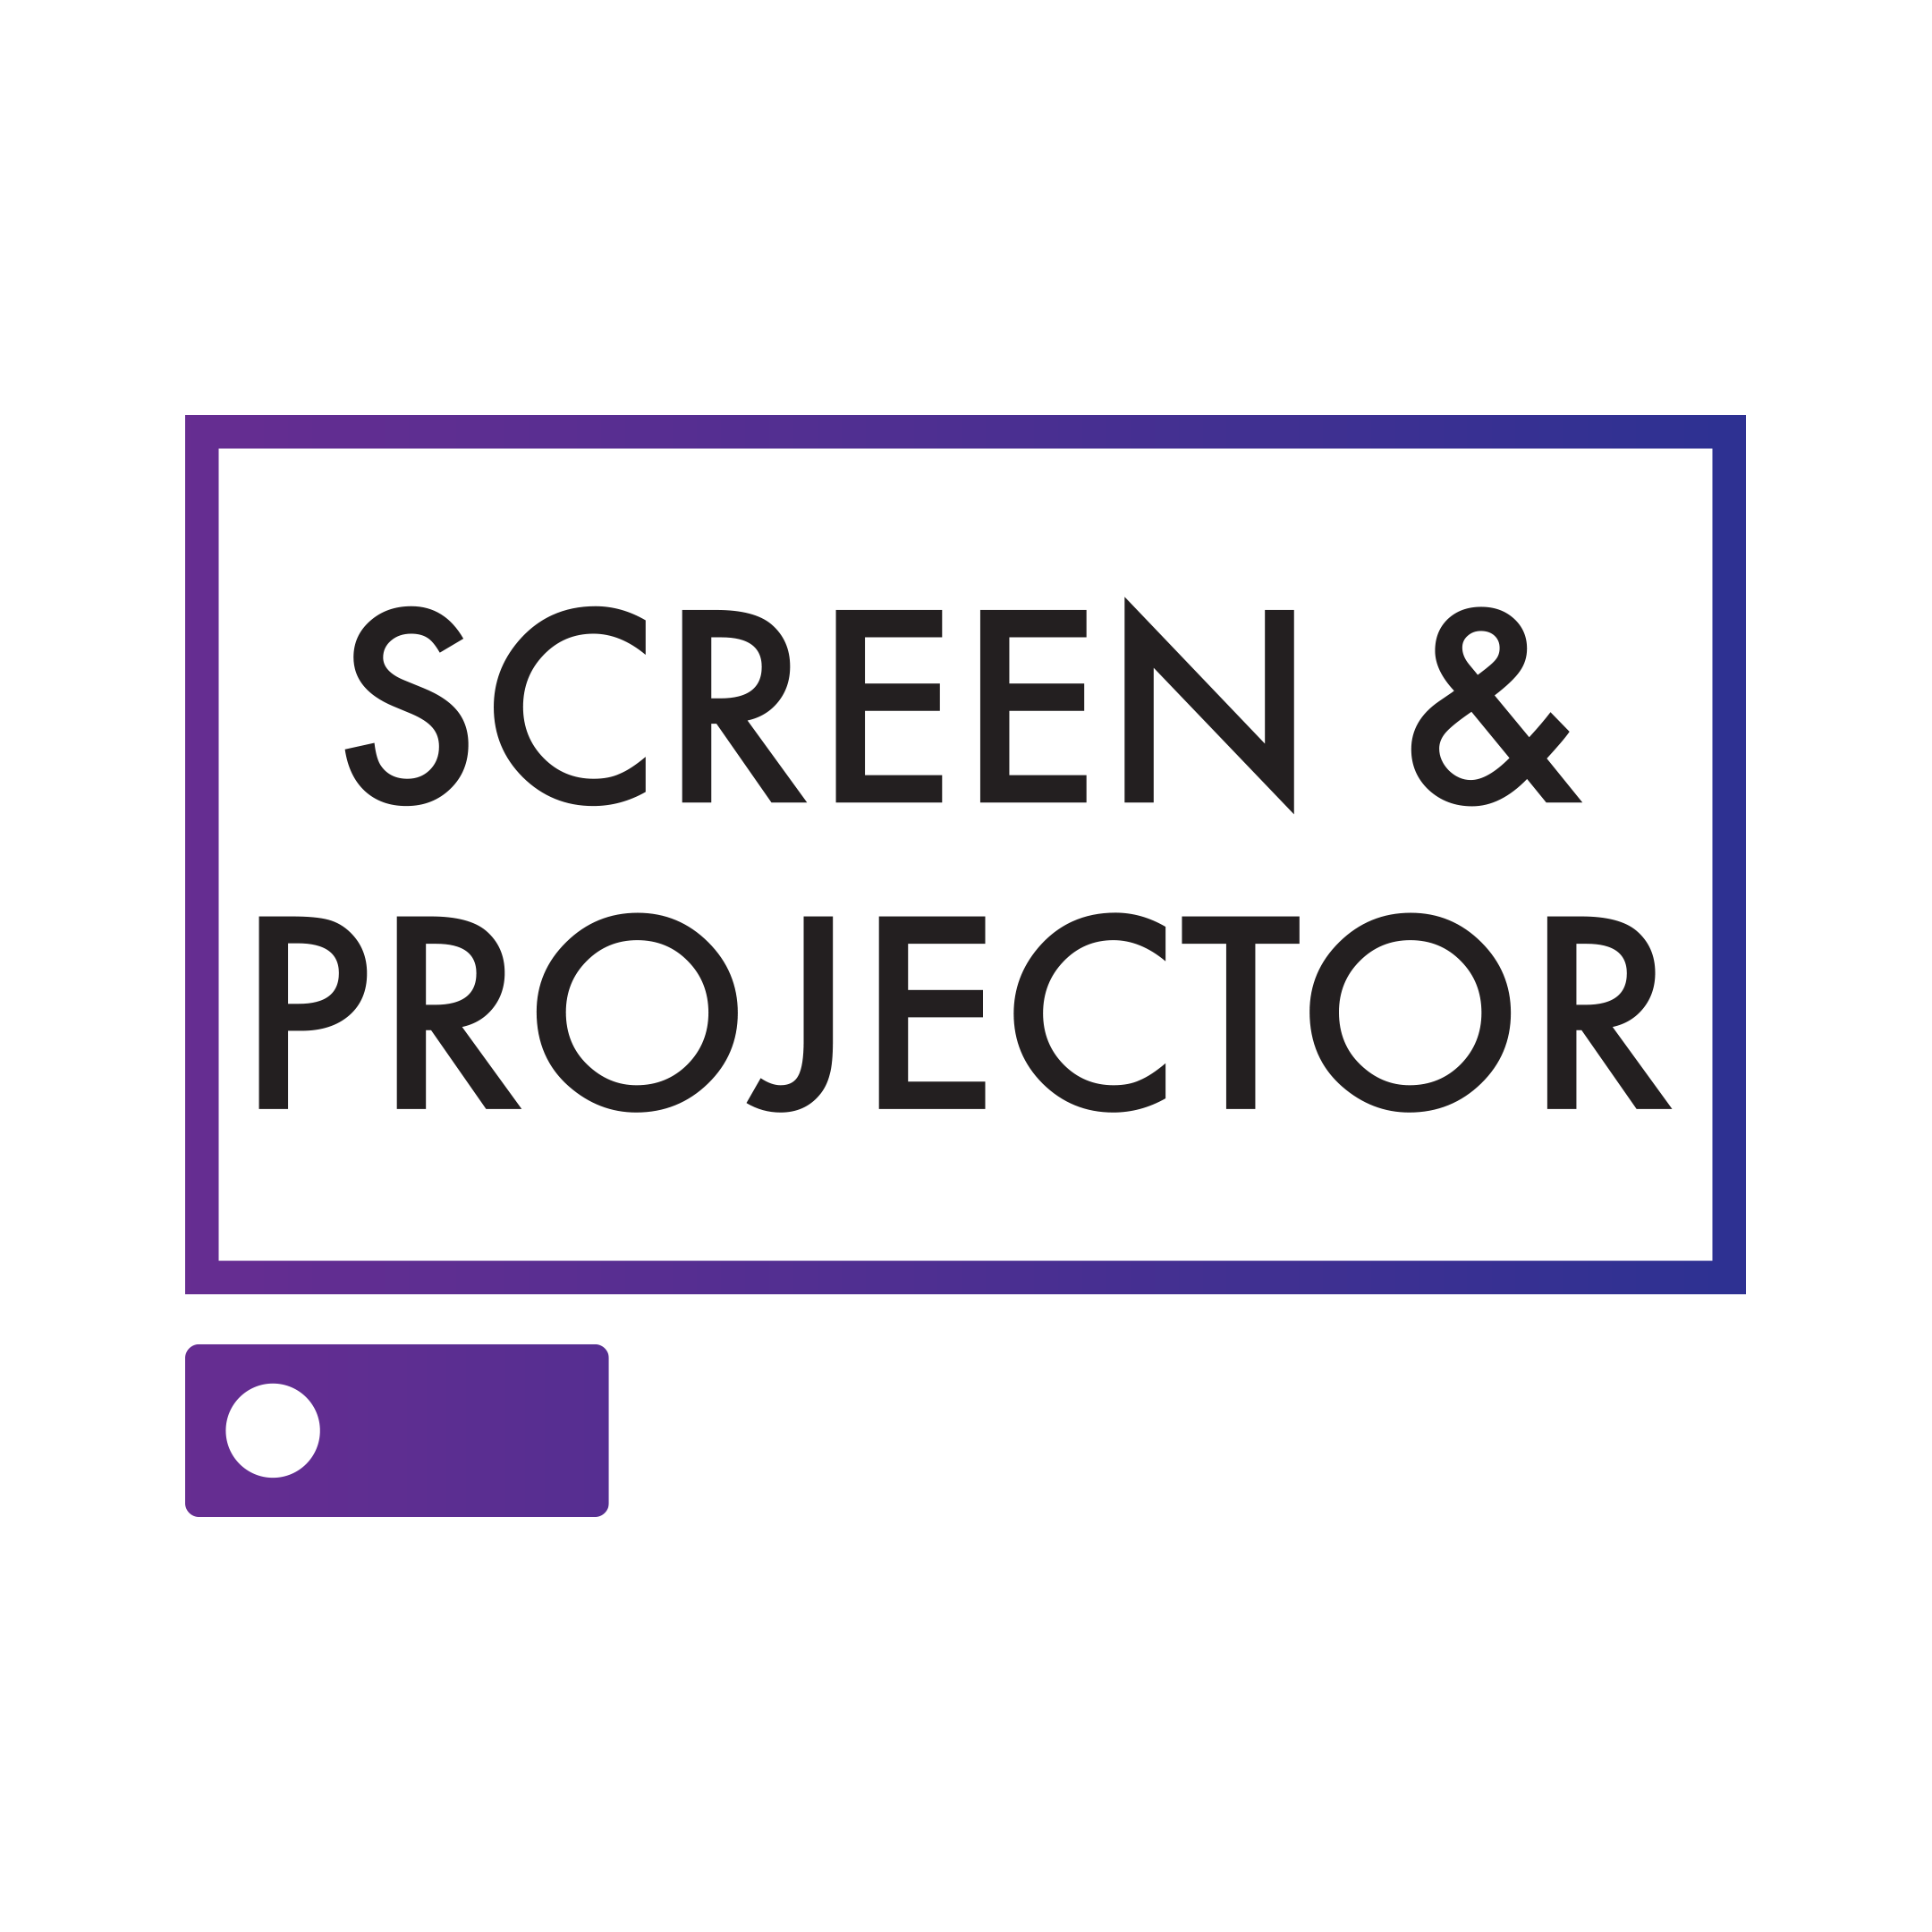 Screen & Projector